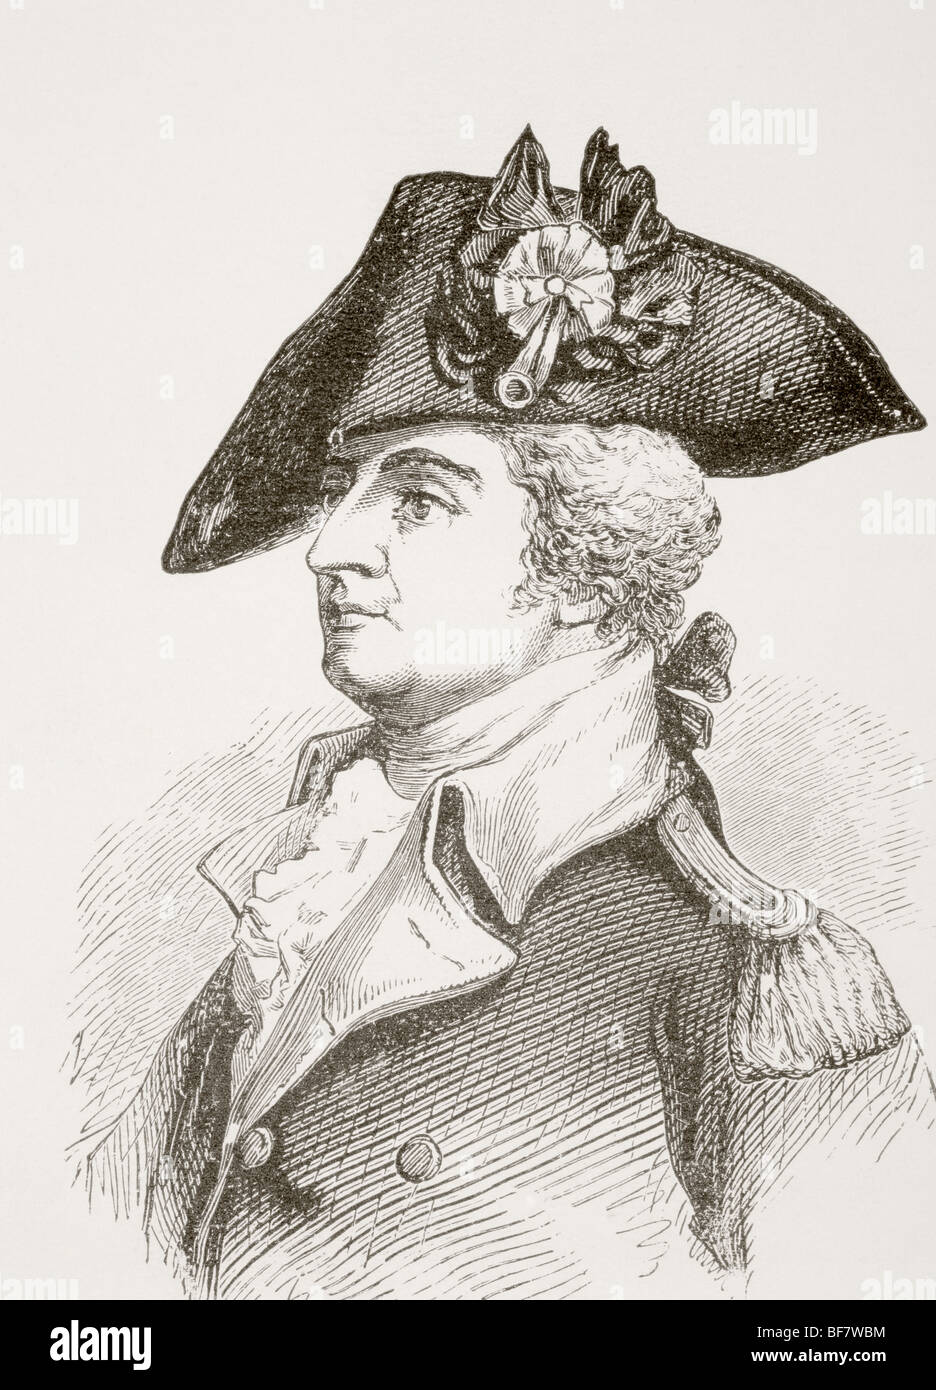 Anthony Wayne 1745 to 1796. United States Army general and statesman. - Stock Image